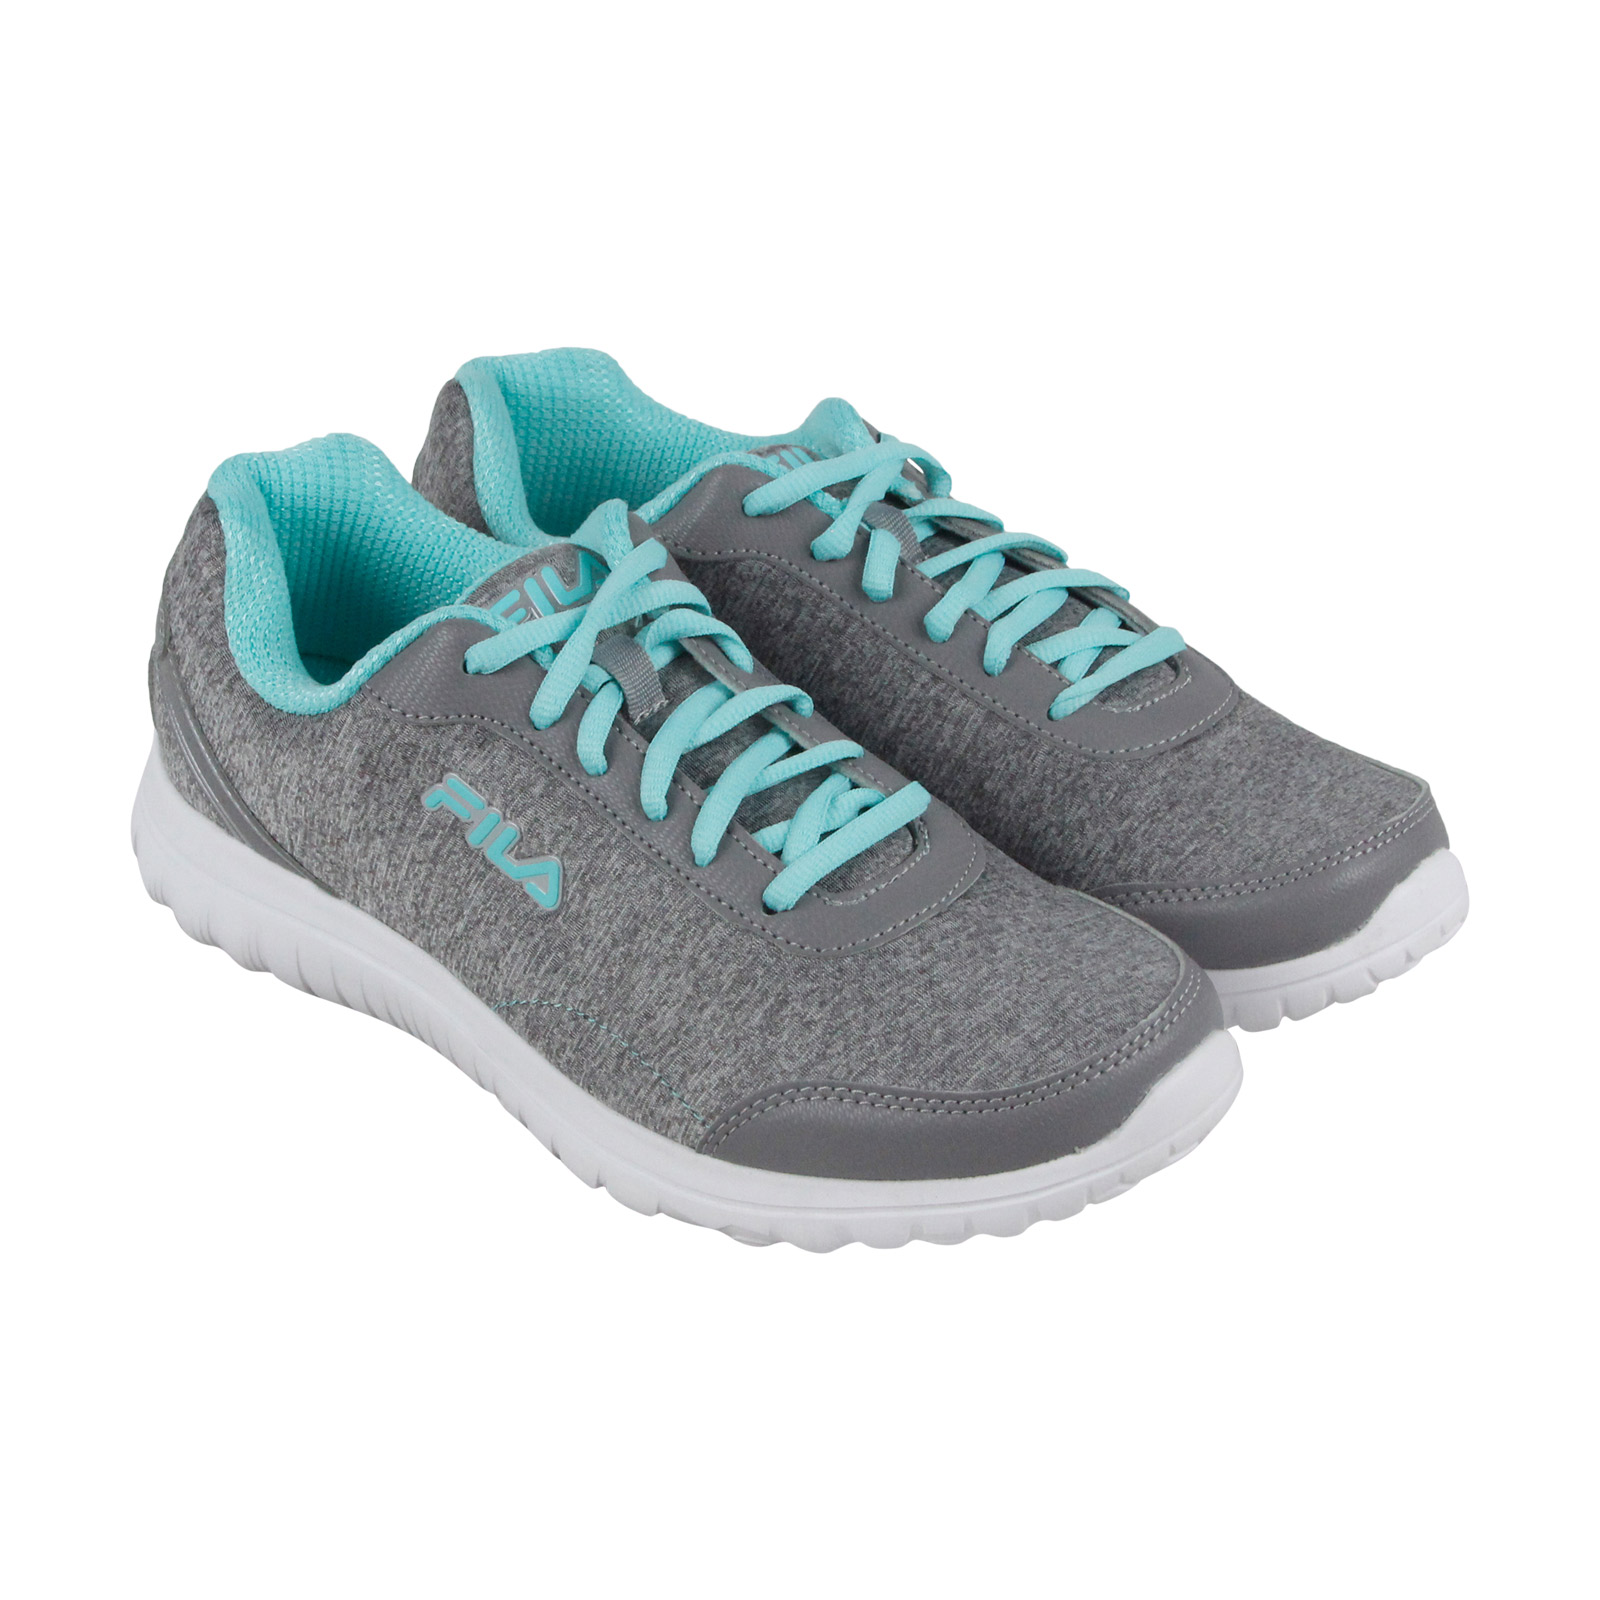 Fila Lite Spring Heather Womens Gray Textile Athletic Lace Up Running Shoes 9.5